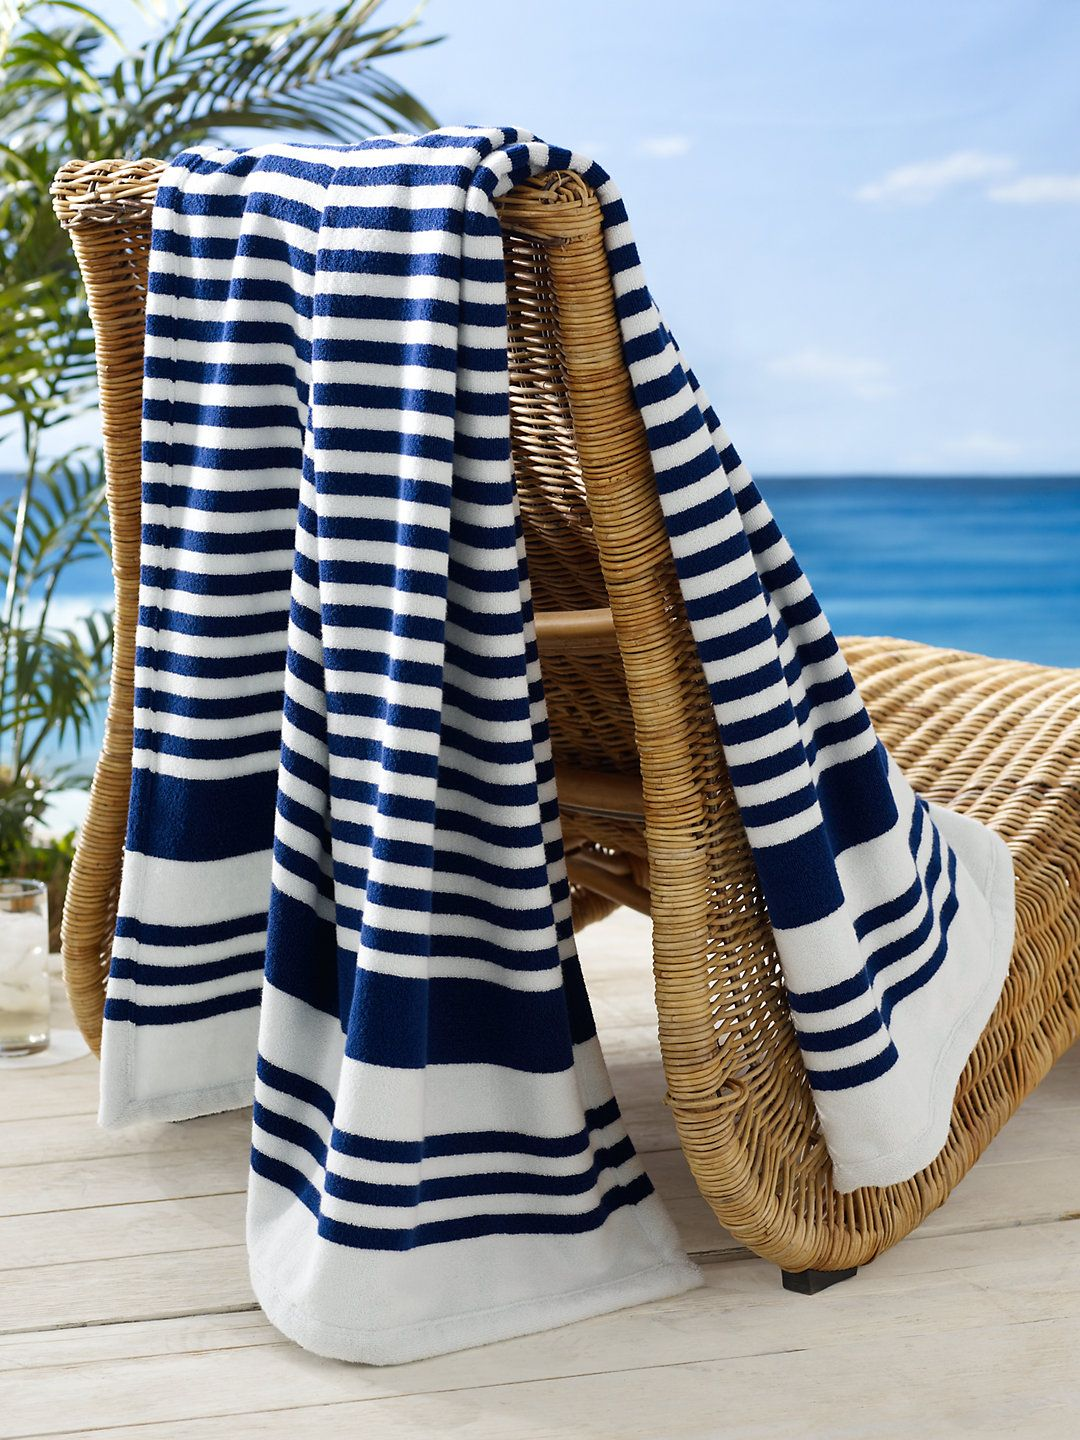 Ralph Lauren Striped Terry Beach Towel For The Spring Summer